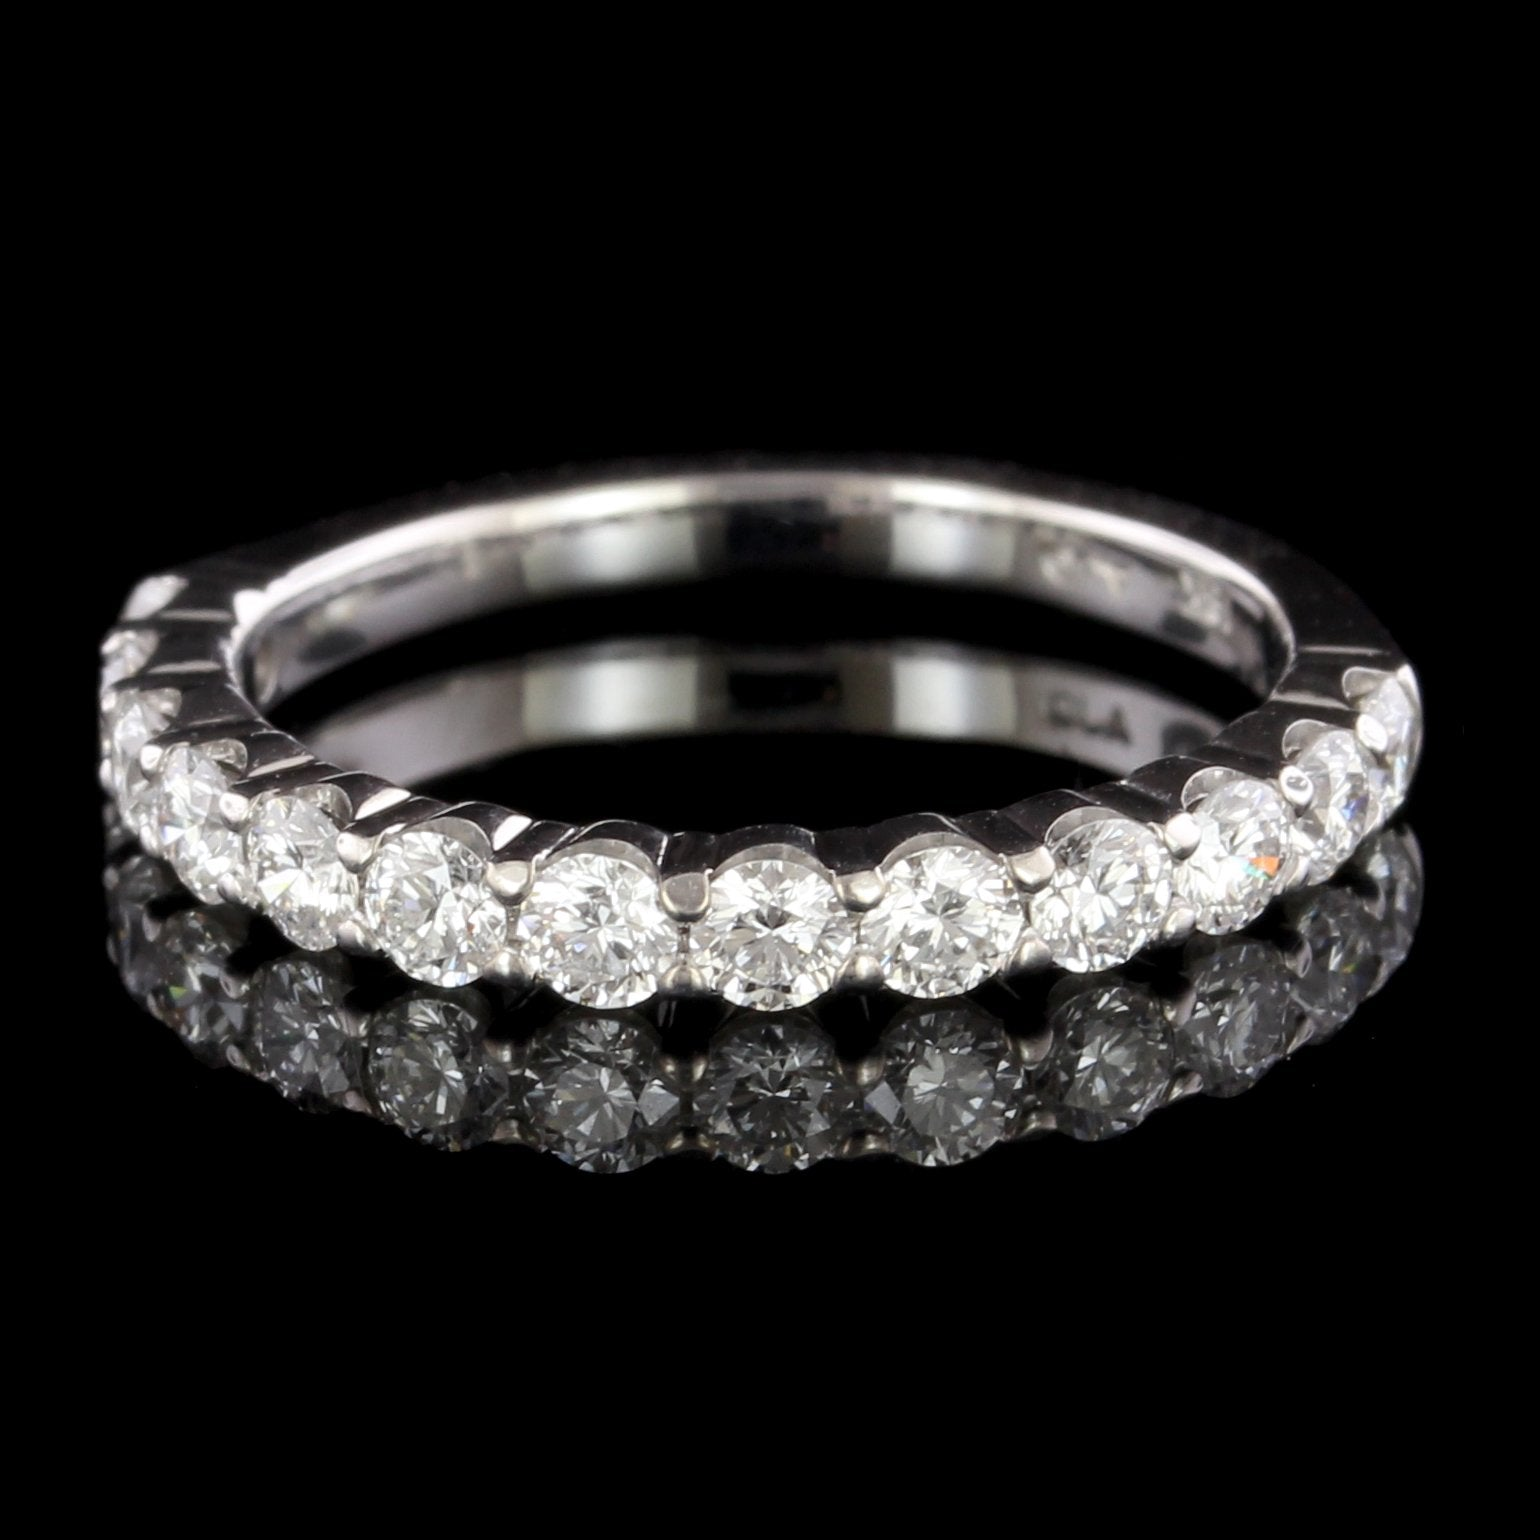 18K White Gold Estate Diamond Band